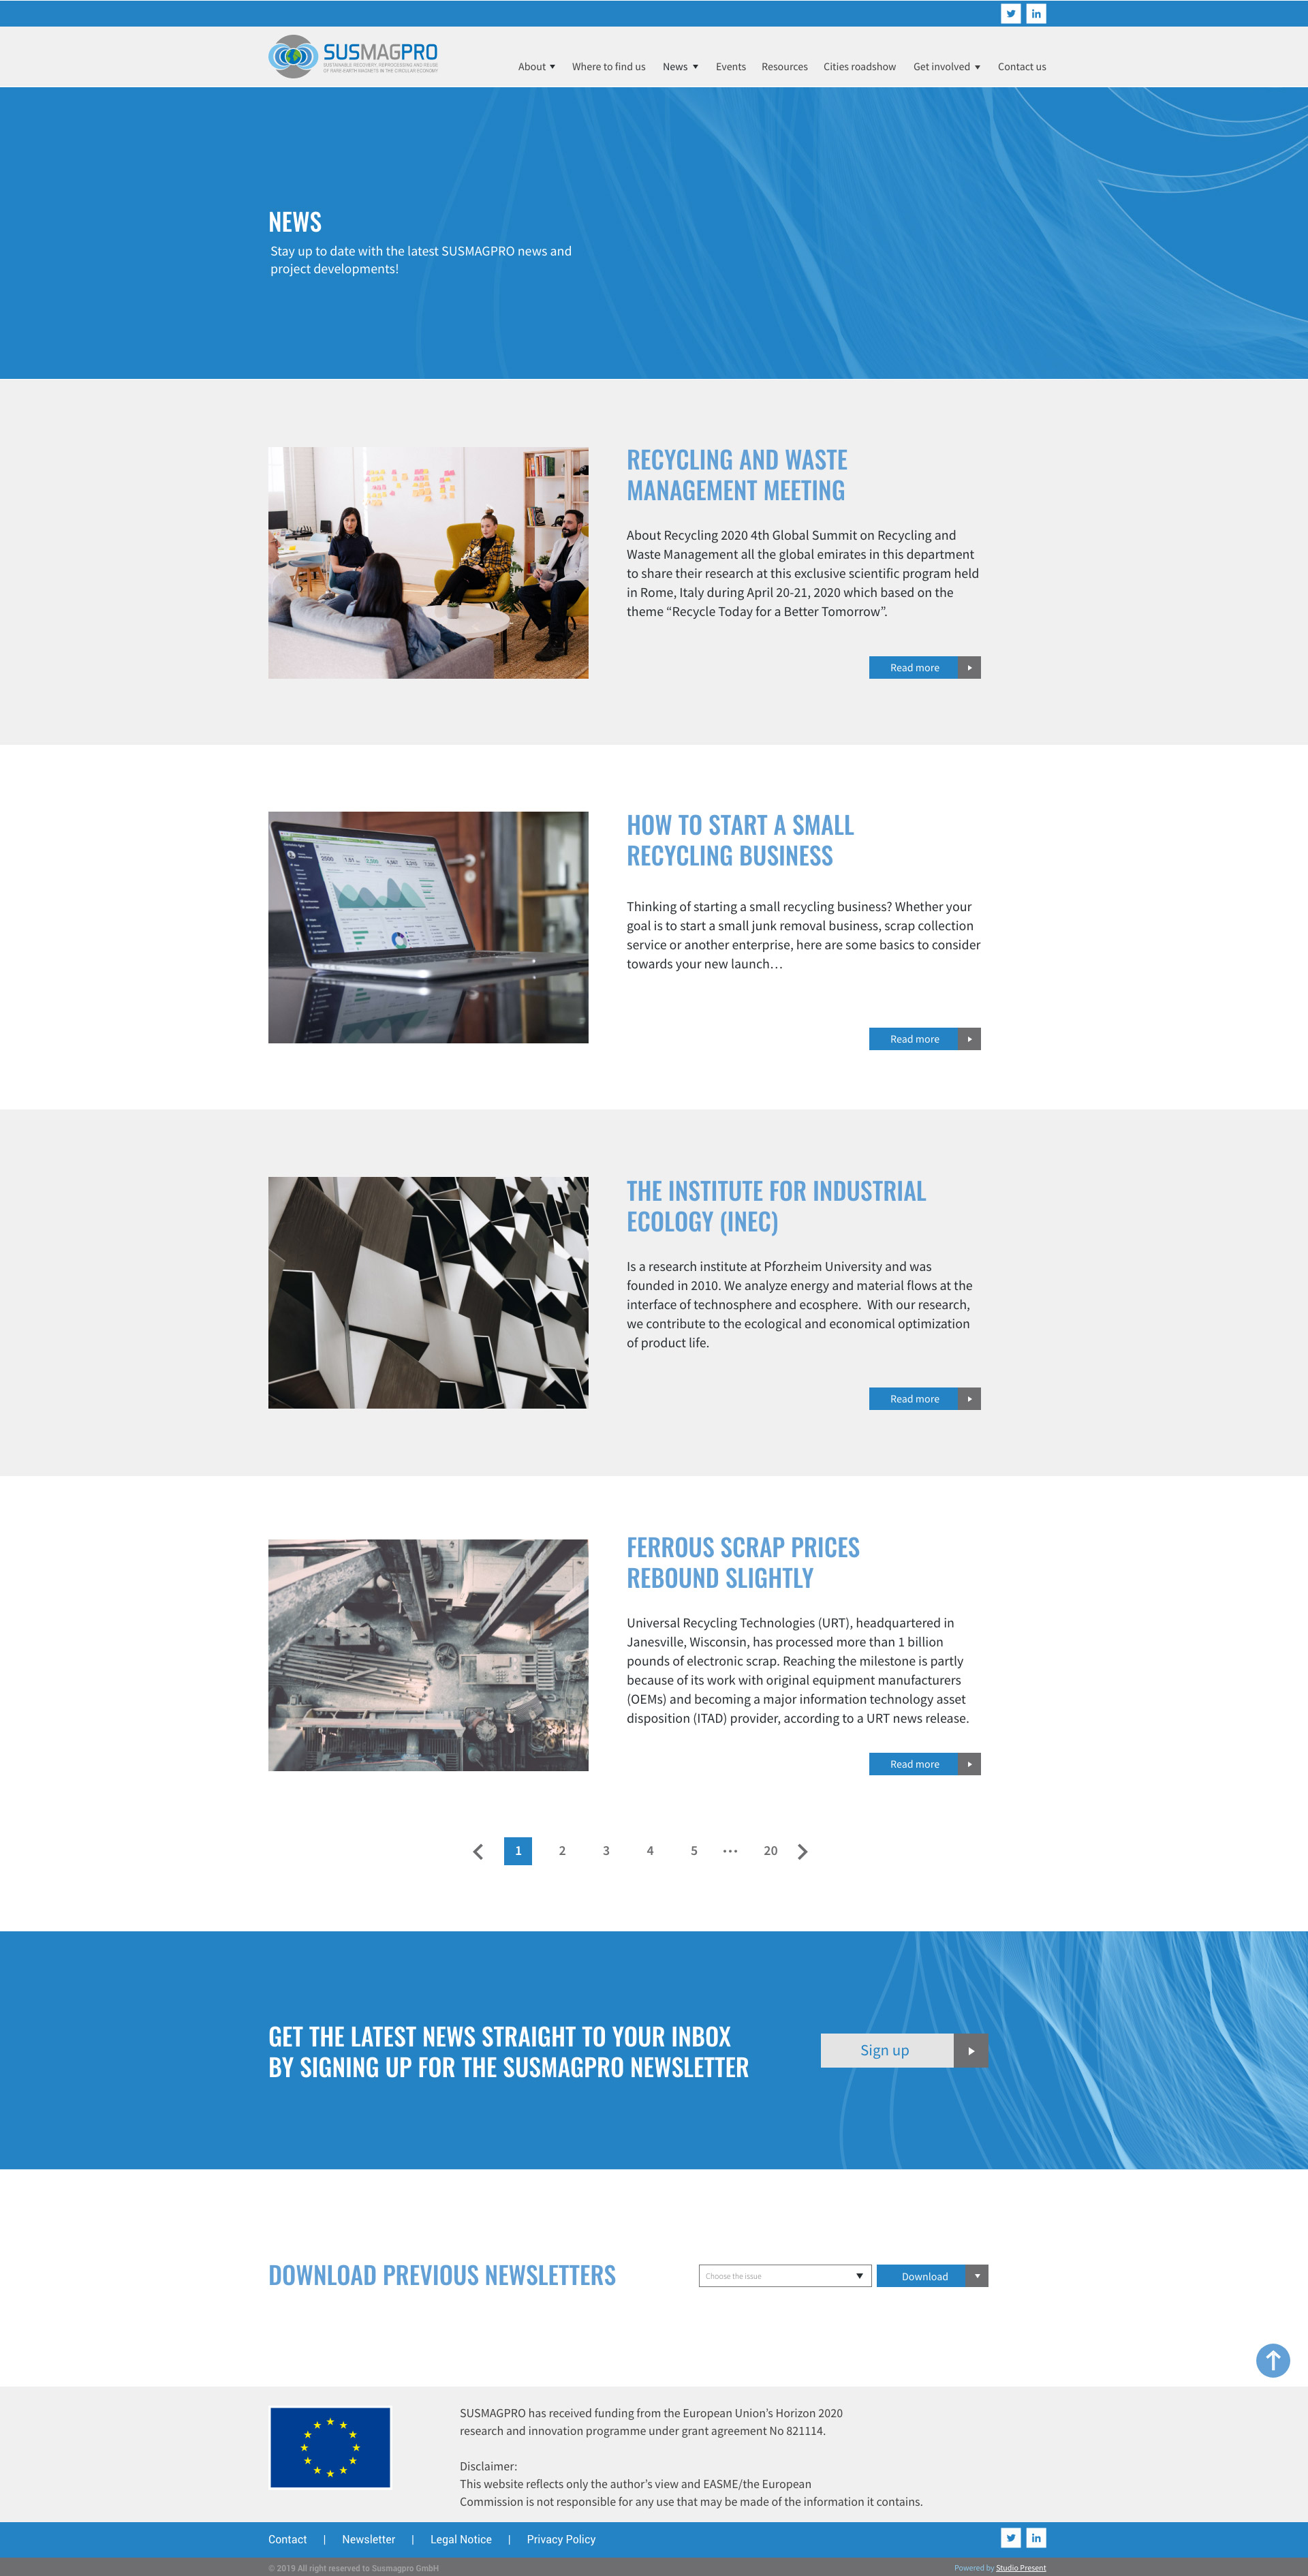 Susmagpro case study website screenshot - Studio Present